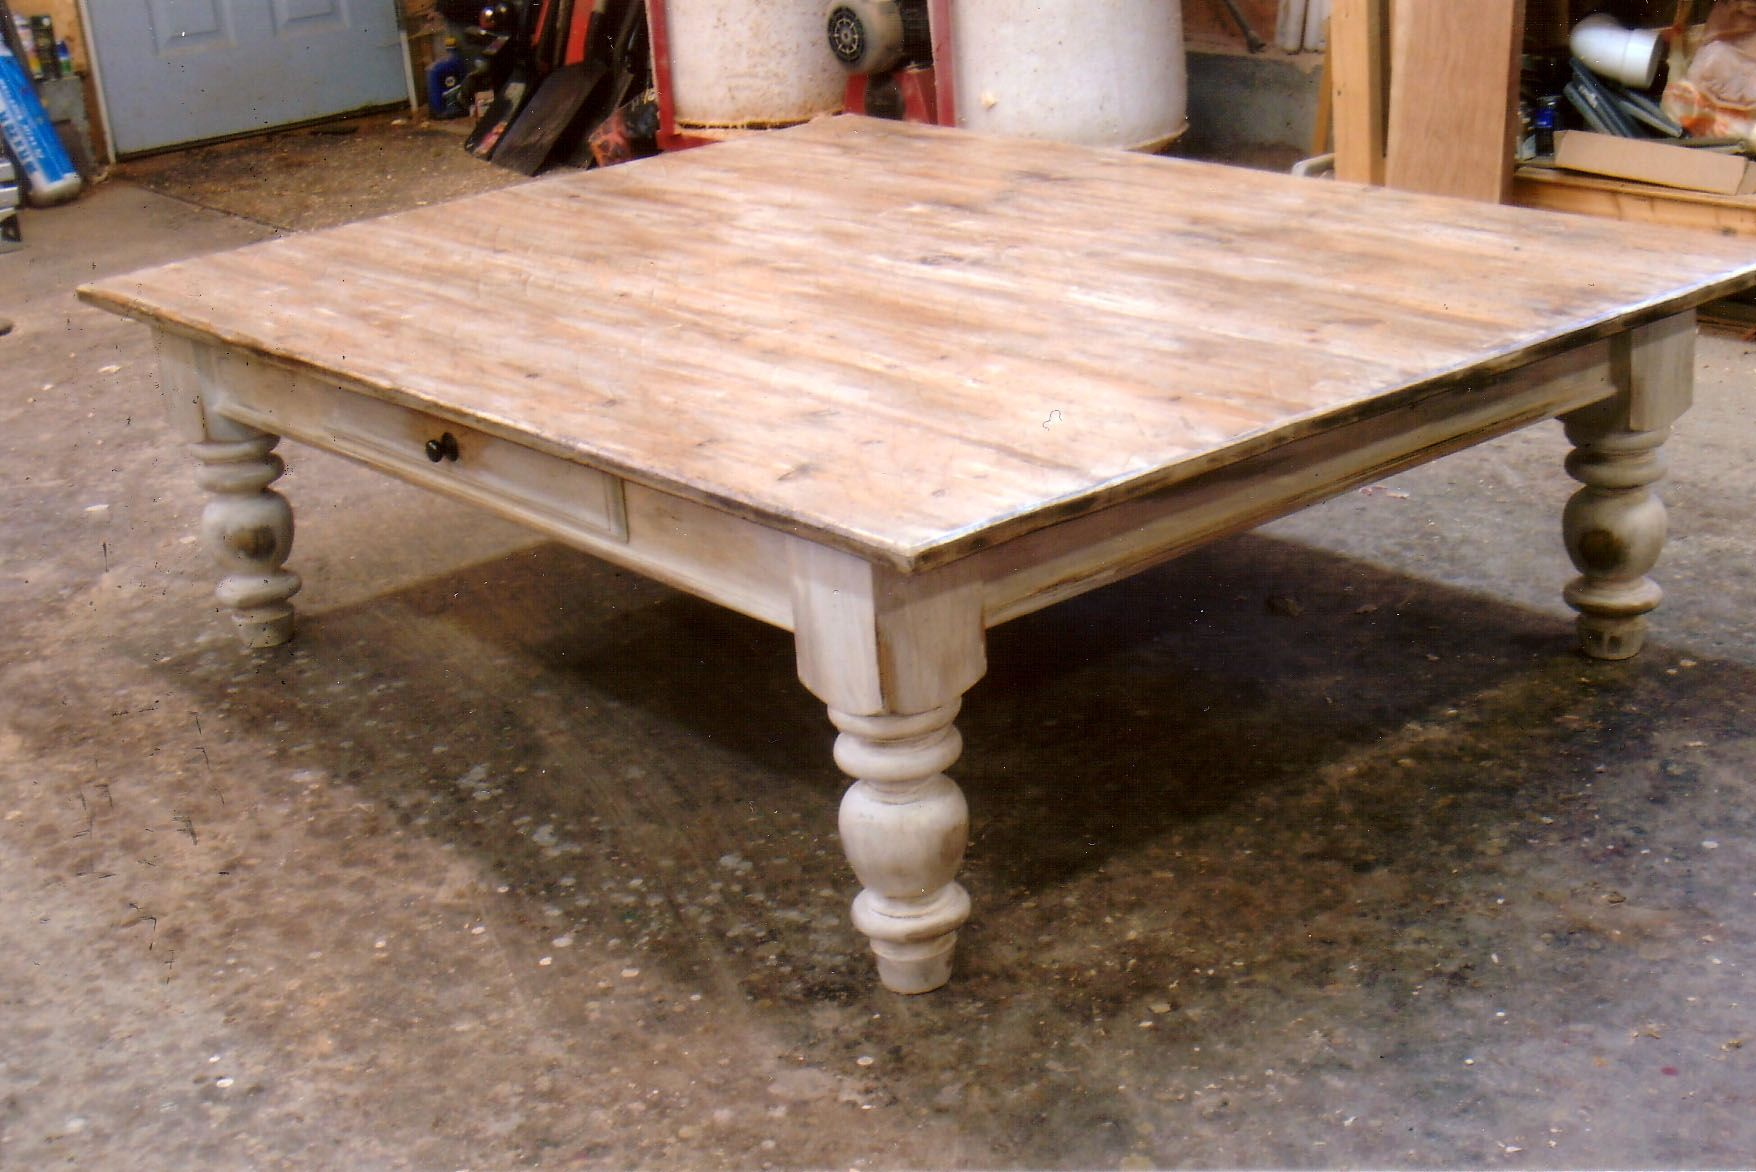 Exceptionnel Big Square Wooden Coffee Table   Coffee Tables Have Been Around For Nearly  As Long As Any Household Furniture Product.